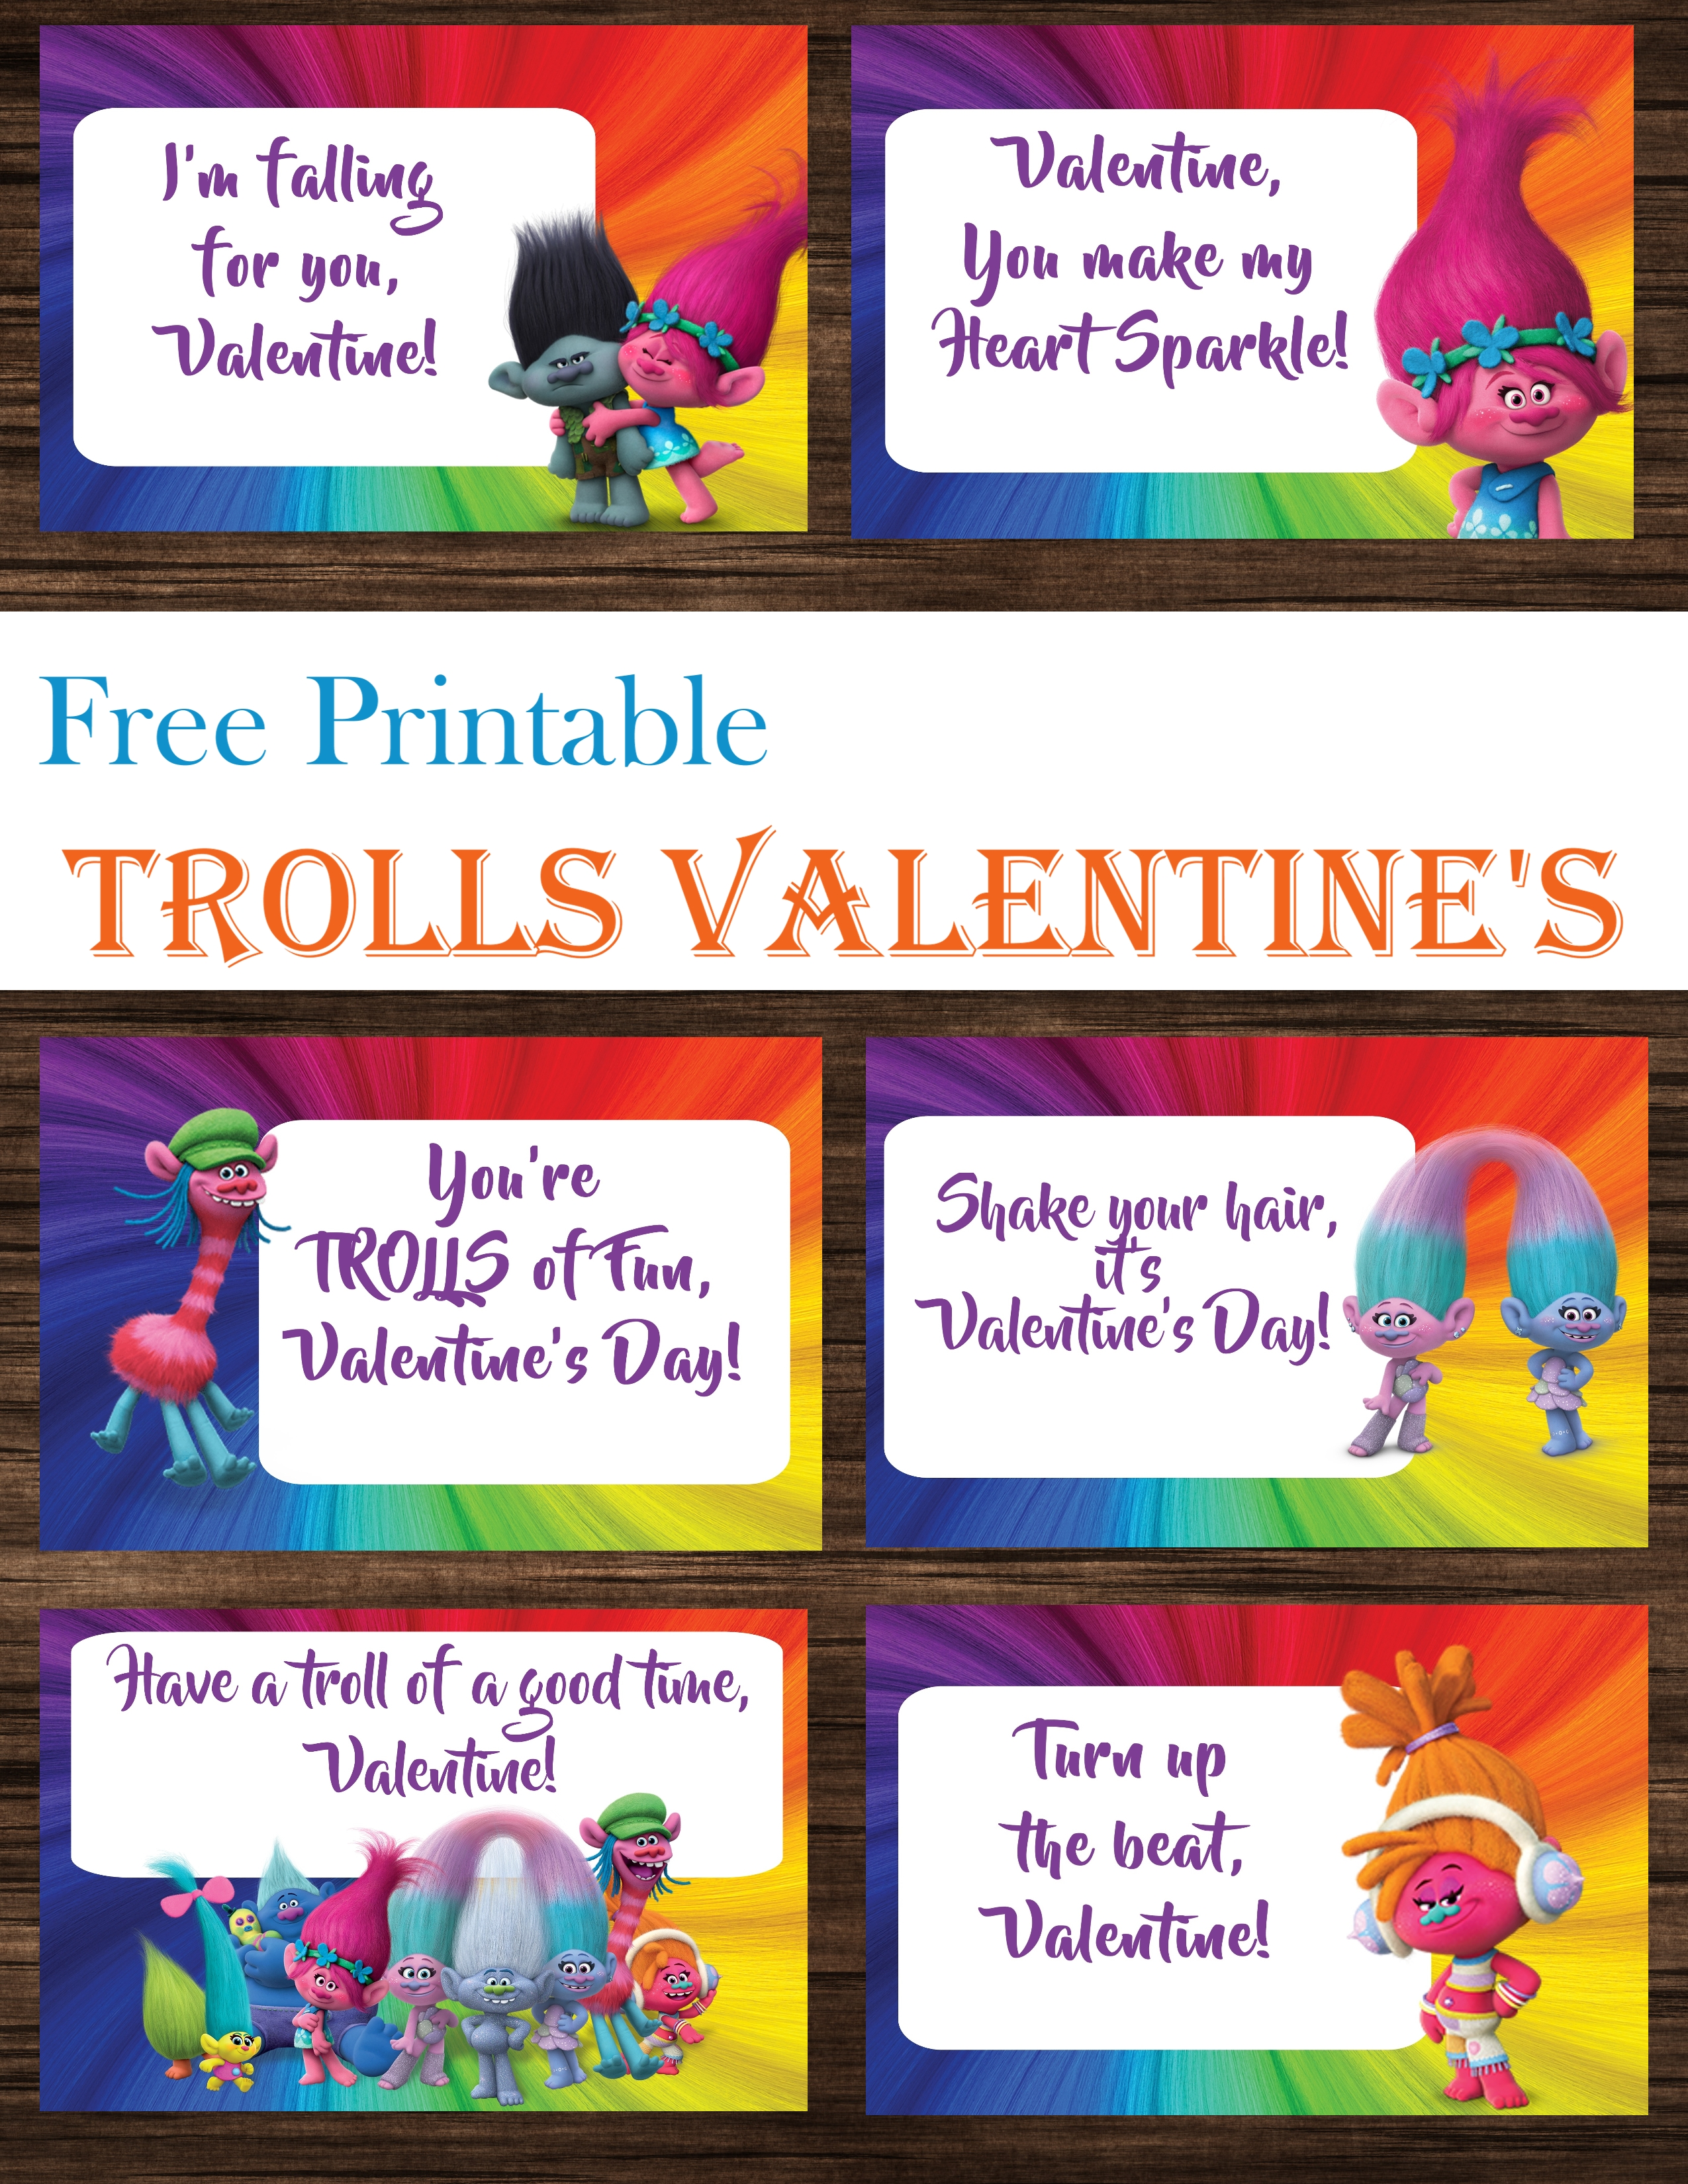 Trolls Valentine's Day Cards Free Printables